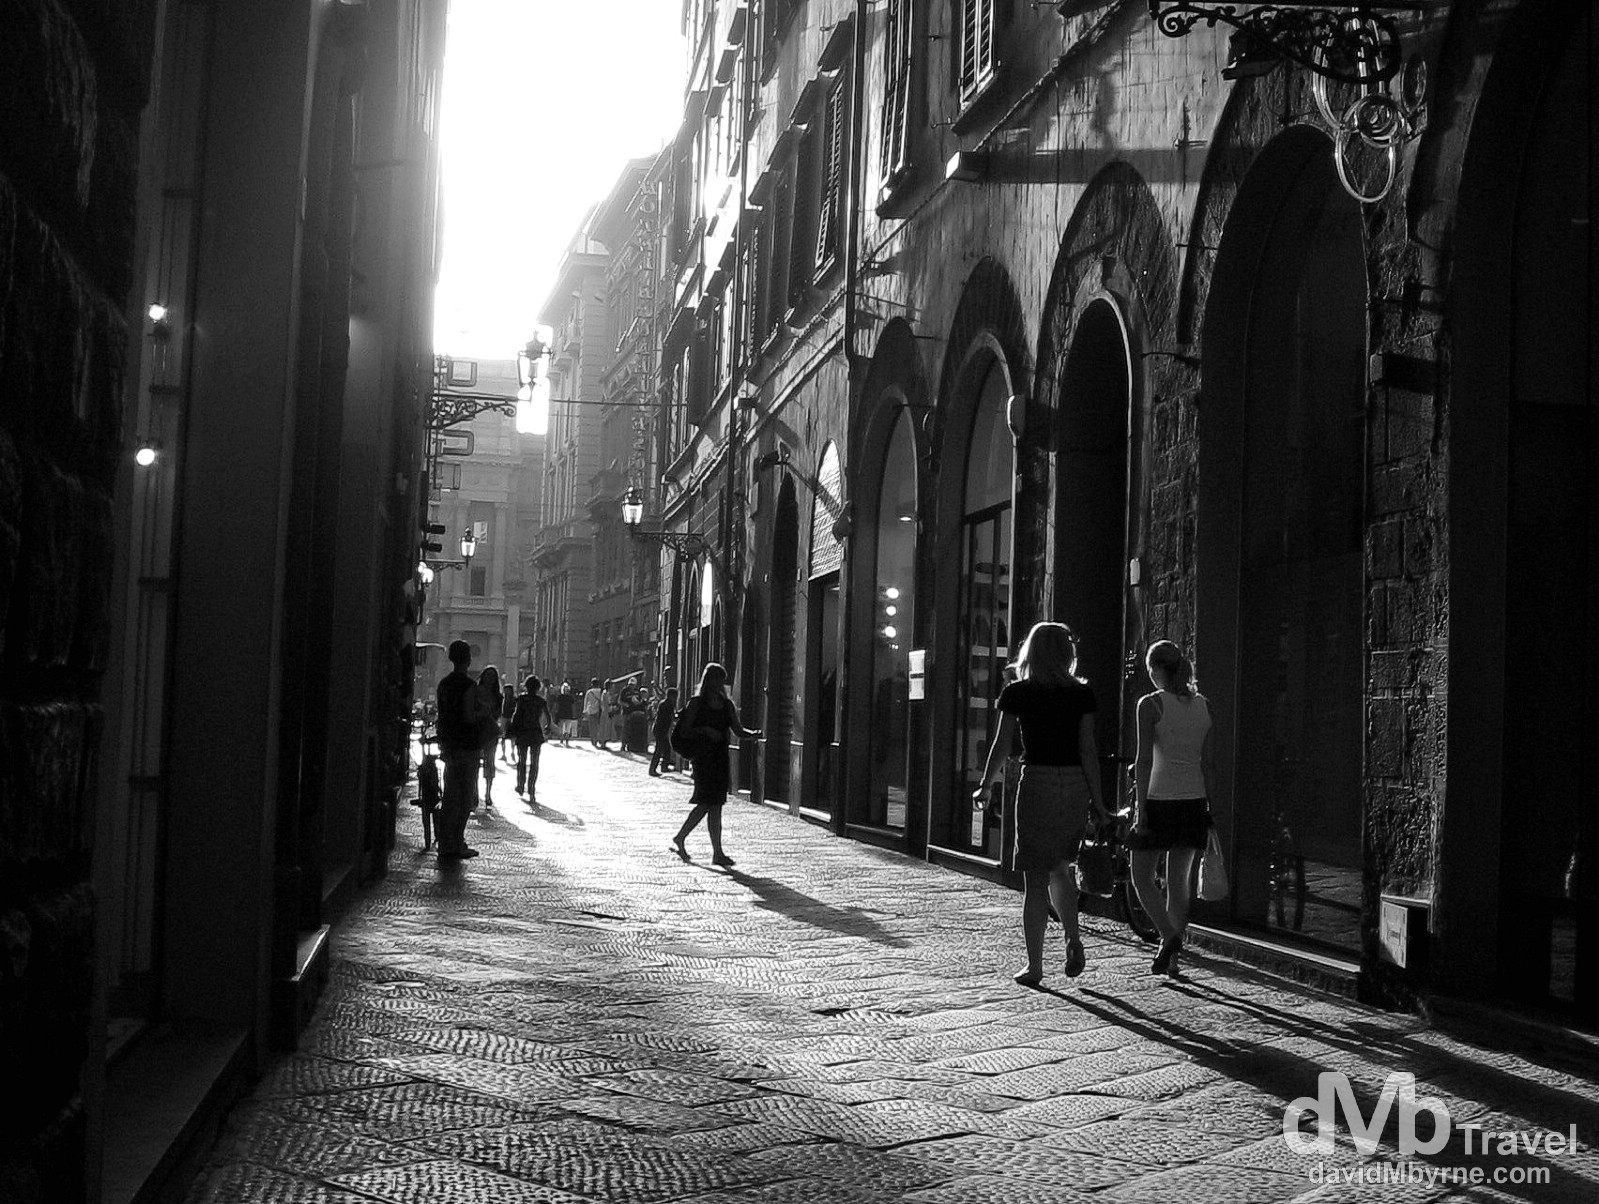 Late evening sunlight in a narrow lane off Piazza della Repubilica, Florence, Italy. August 28th 2007.